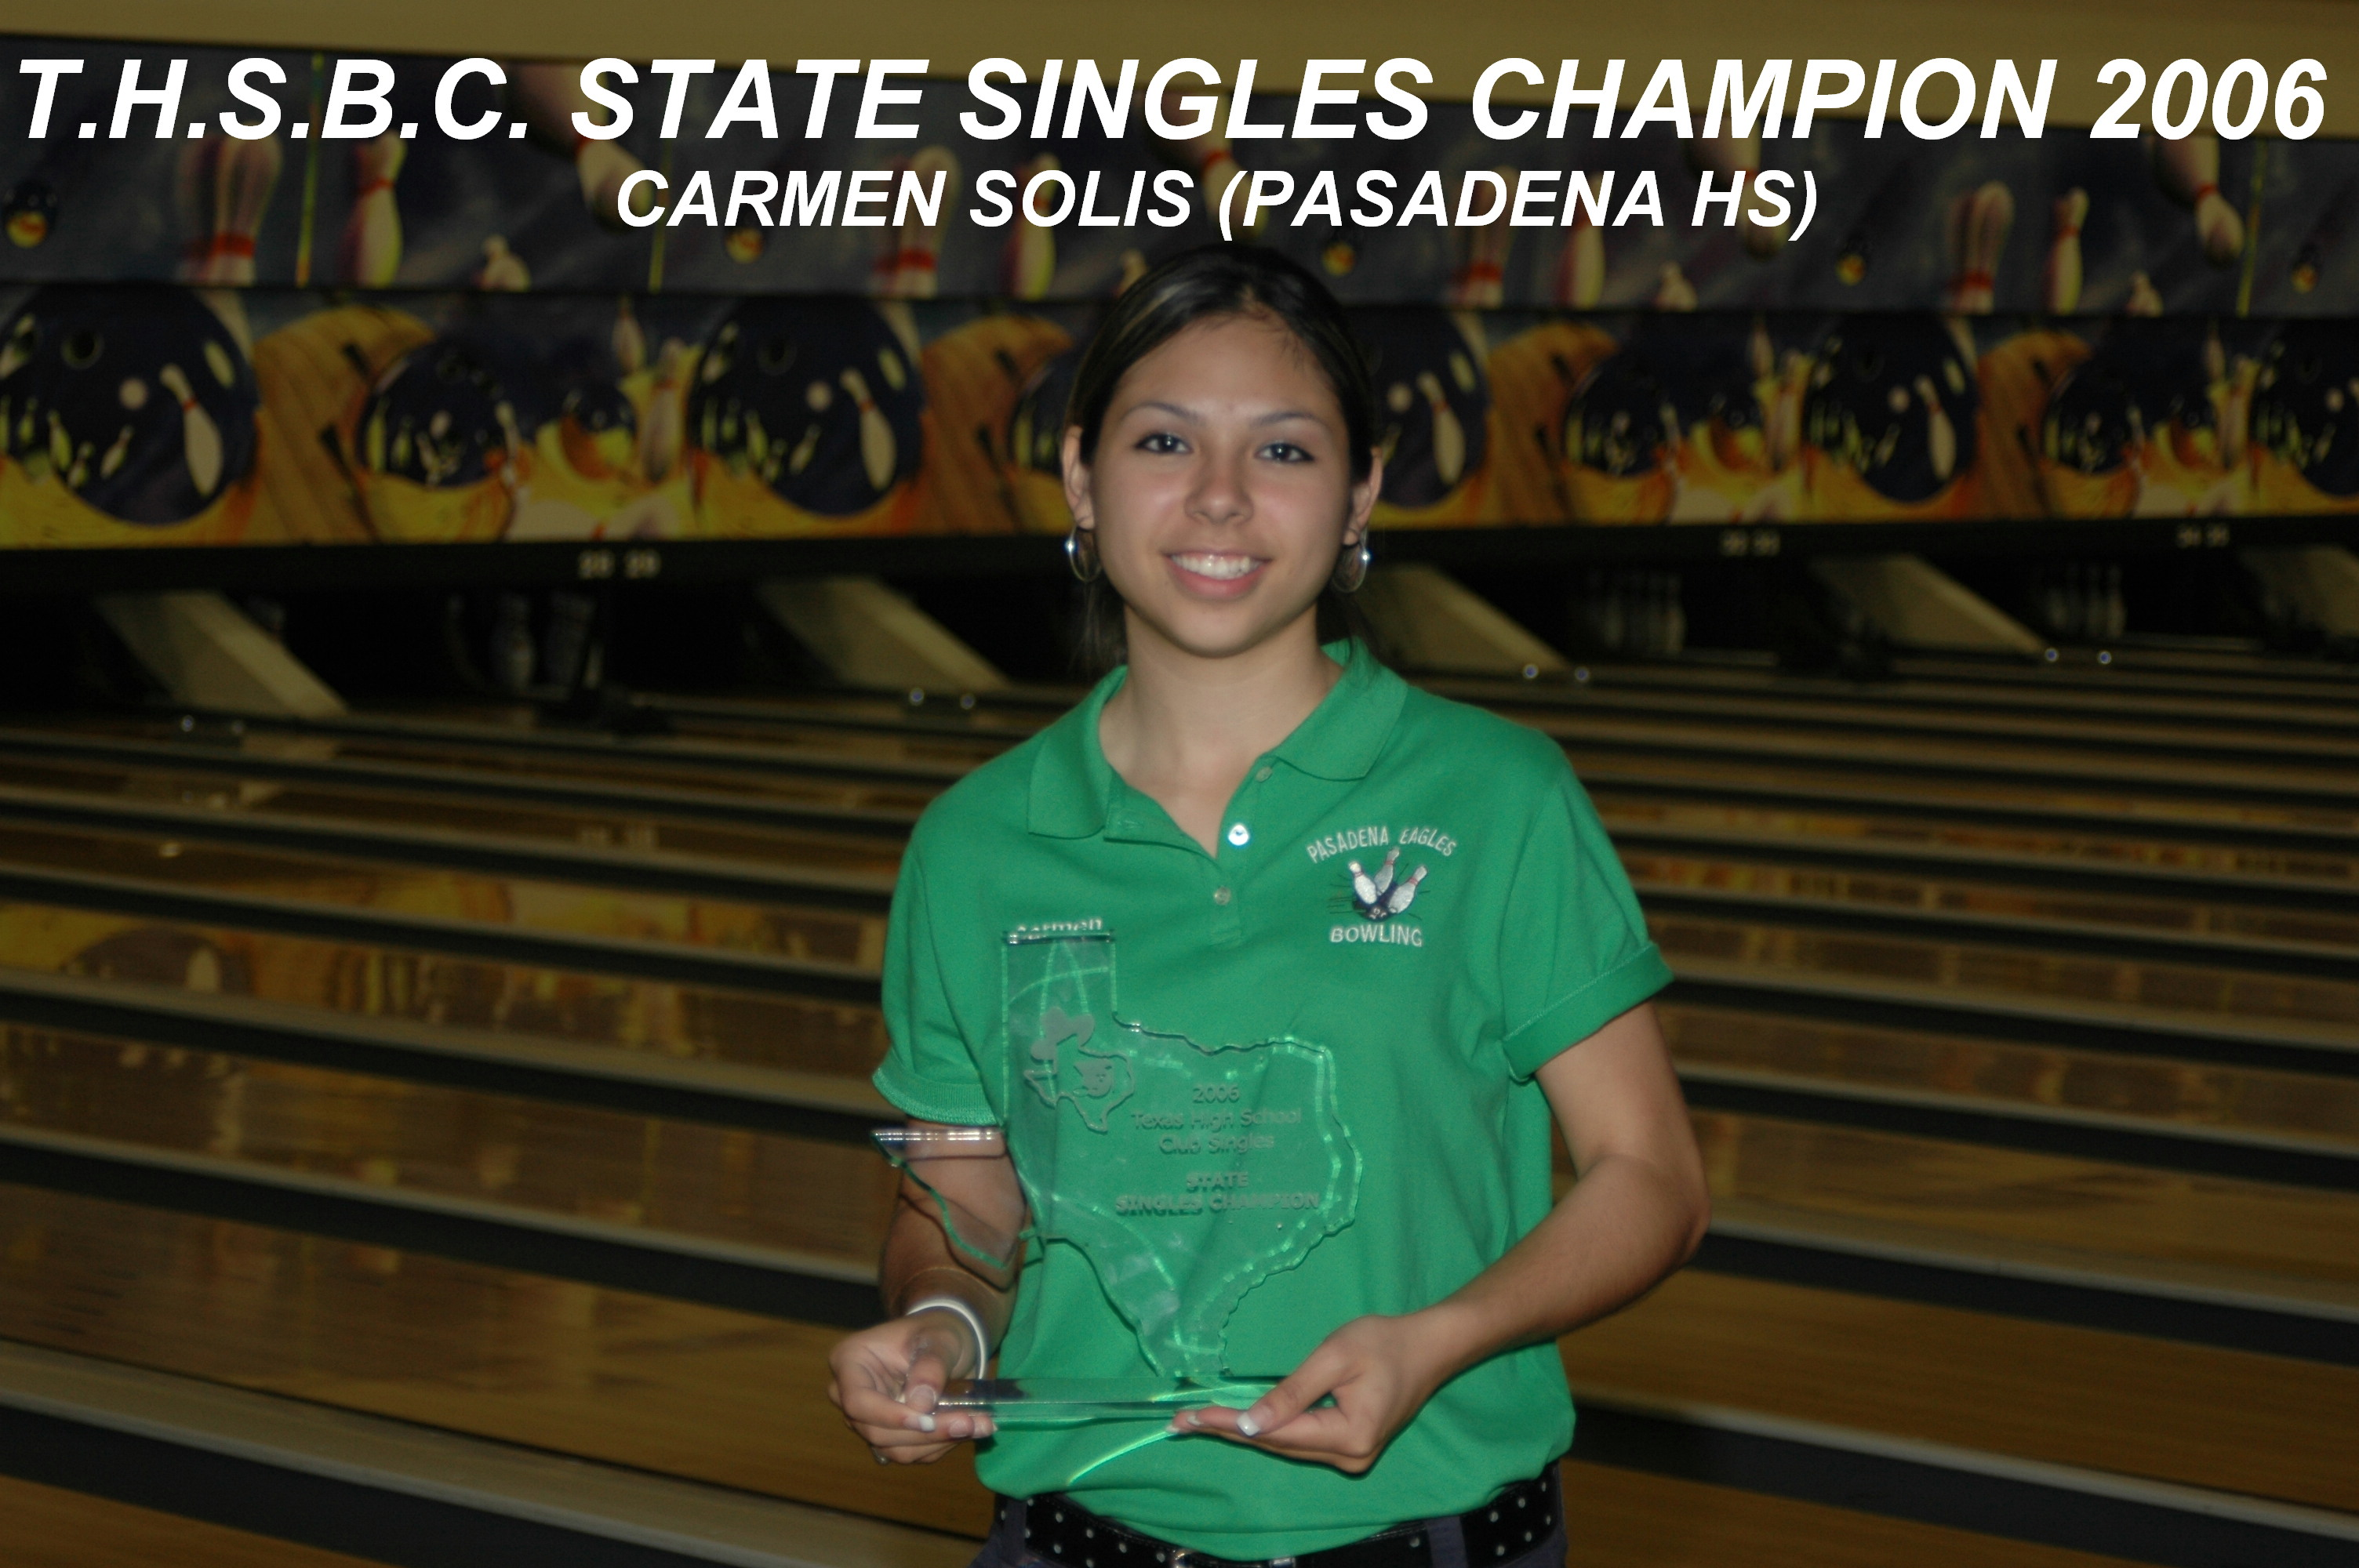 2006 Girls Singles Champ